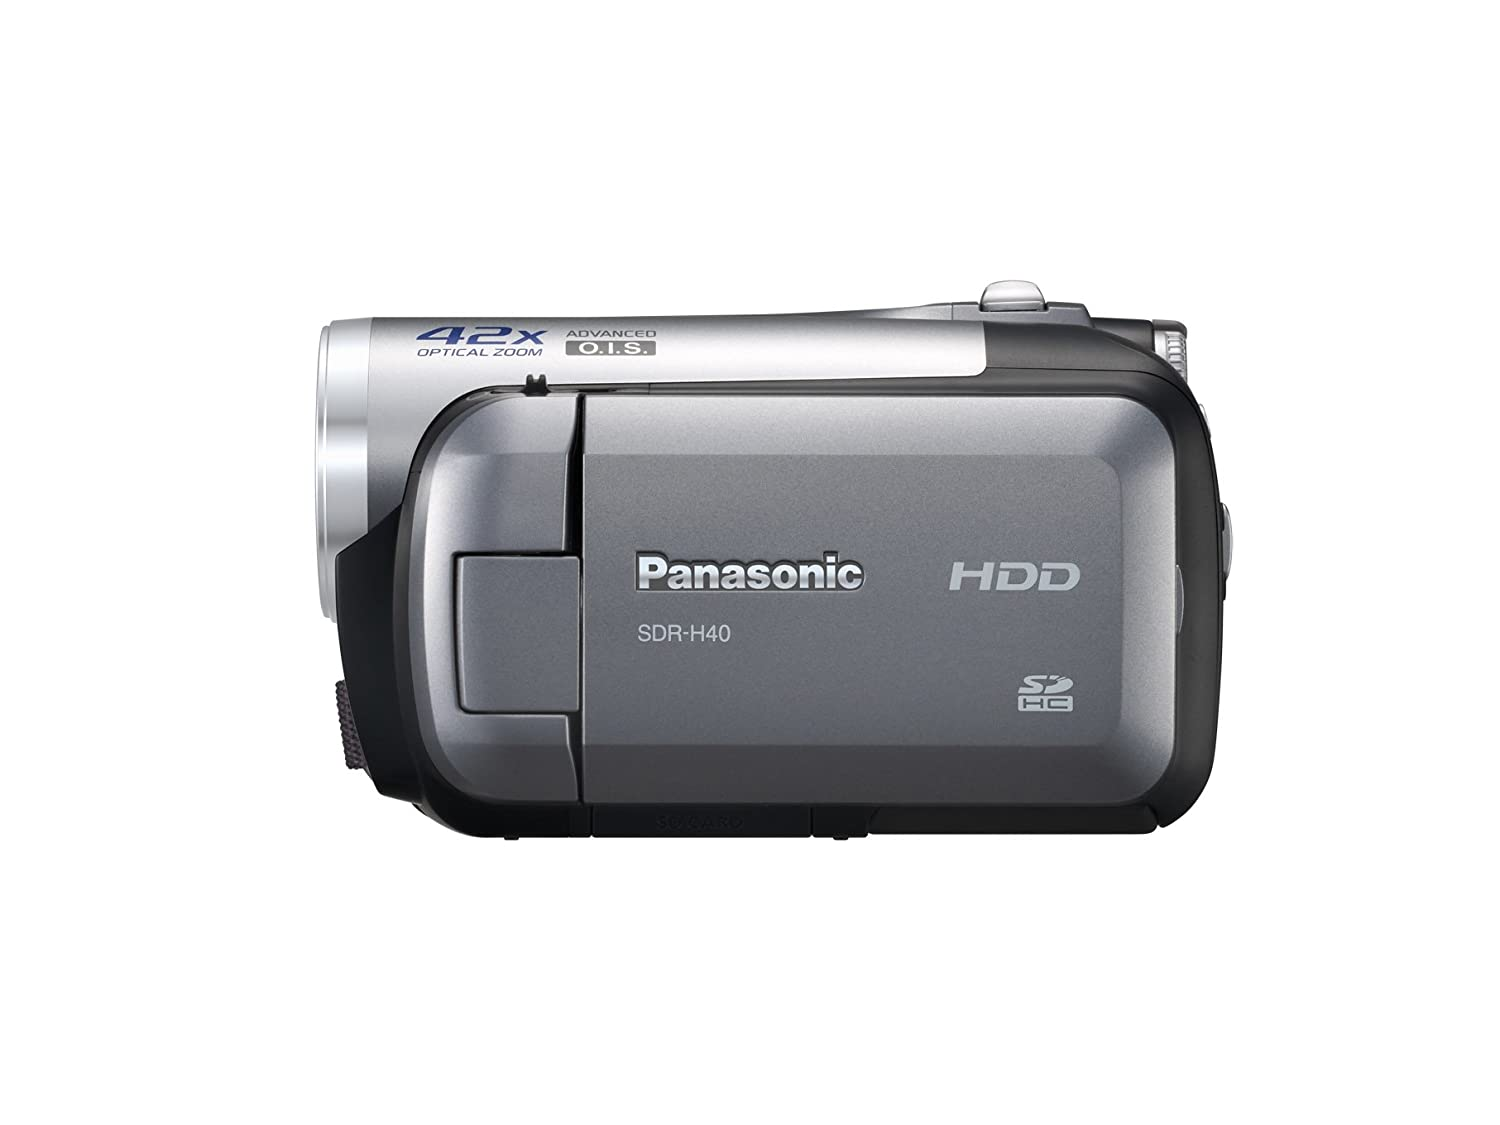 Panasonic SDR-H40 40GB Hard Drive Camcorder with 42x Optical Image Stabilized Zoom (Discontinued by Manufacturer)